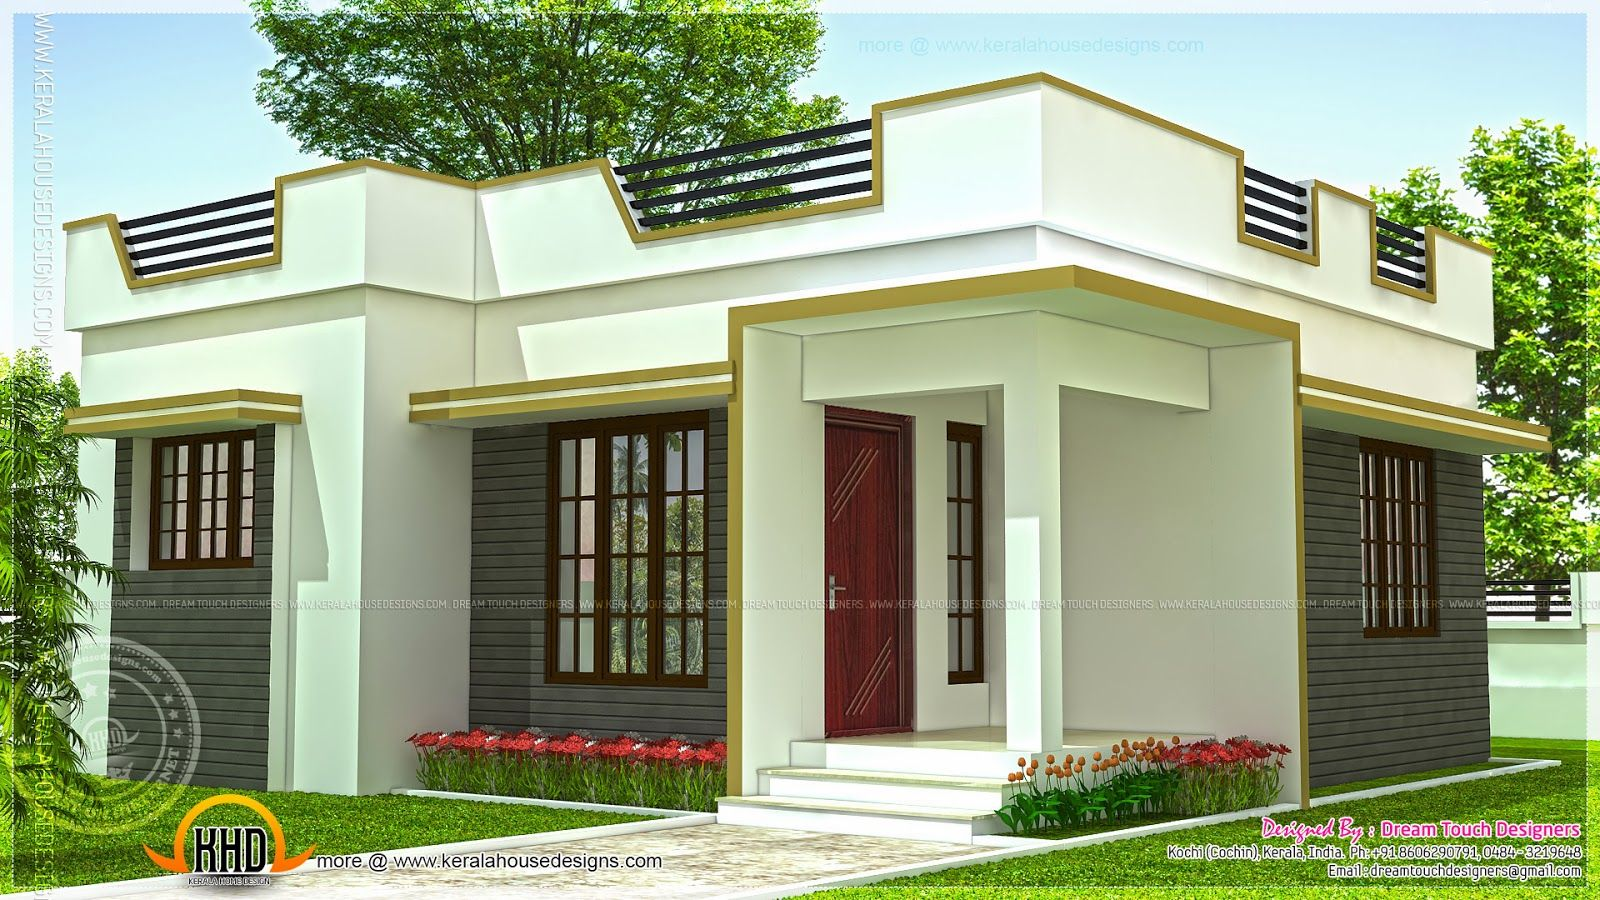 High Quality Kerala Small House Low Budget Plan Modern Plans Blog